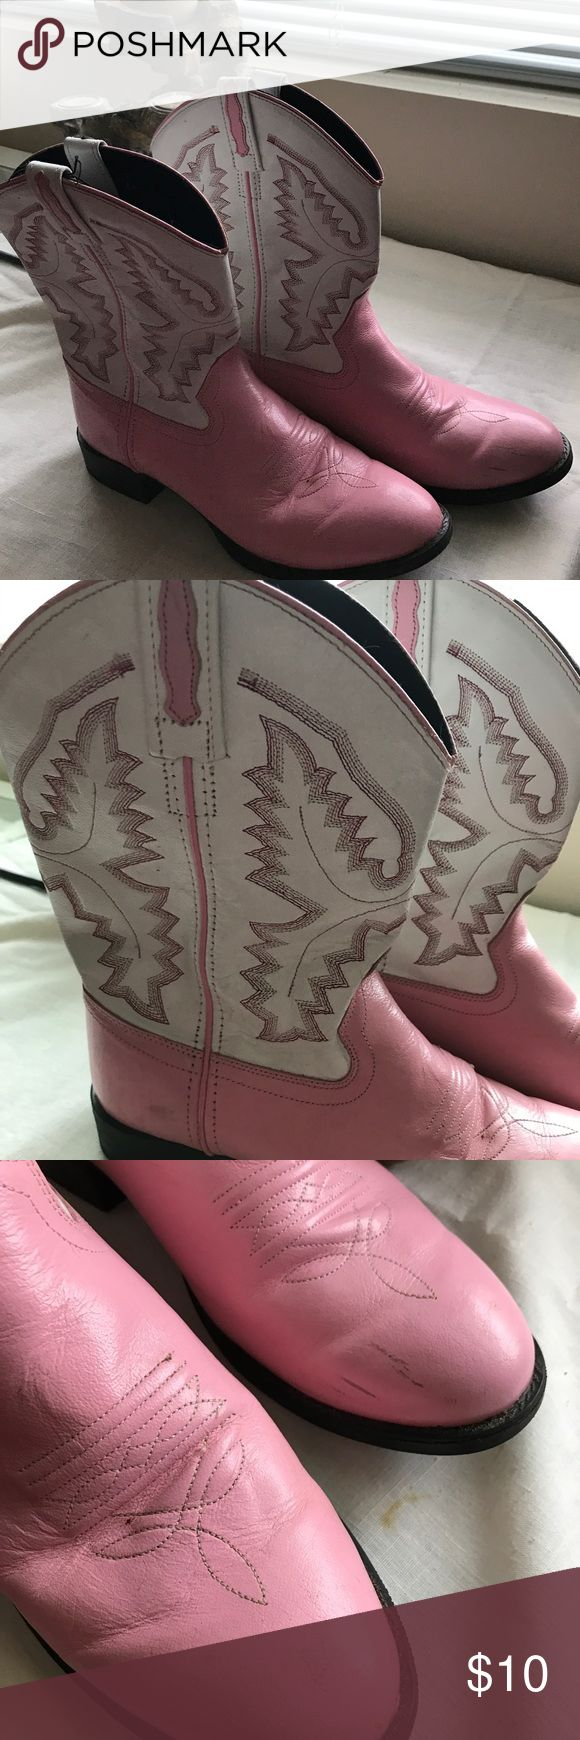 Pink and white cowboy boots with cute design. These Pink and white cowboy boots with cute design are just the thing for fall activities--the Fair, football games, and just anywhere you go.  Wear them with your western outfits or with any skirt--they will look so cool.  No markings but they are same length as 7 1/2 tennis shoes. Proceeds from this closet support Project Hope, a ministry to homeless single moms and their children. Shoes